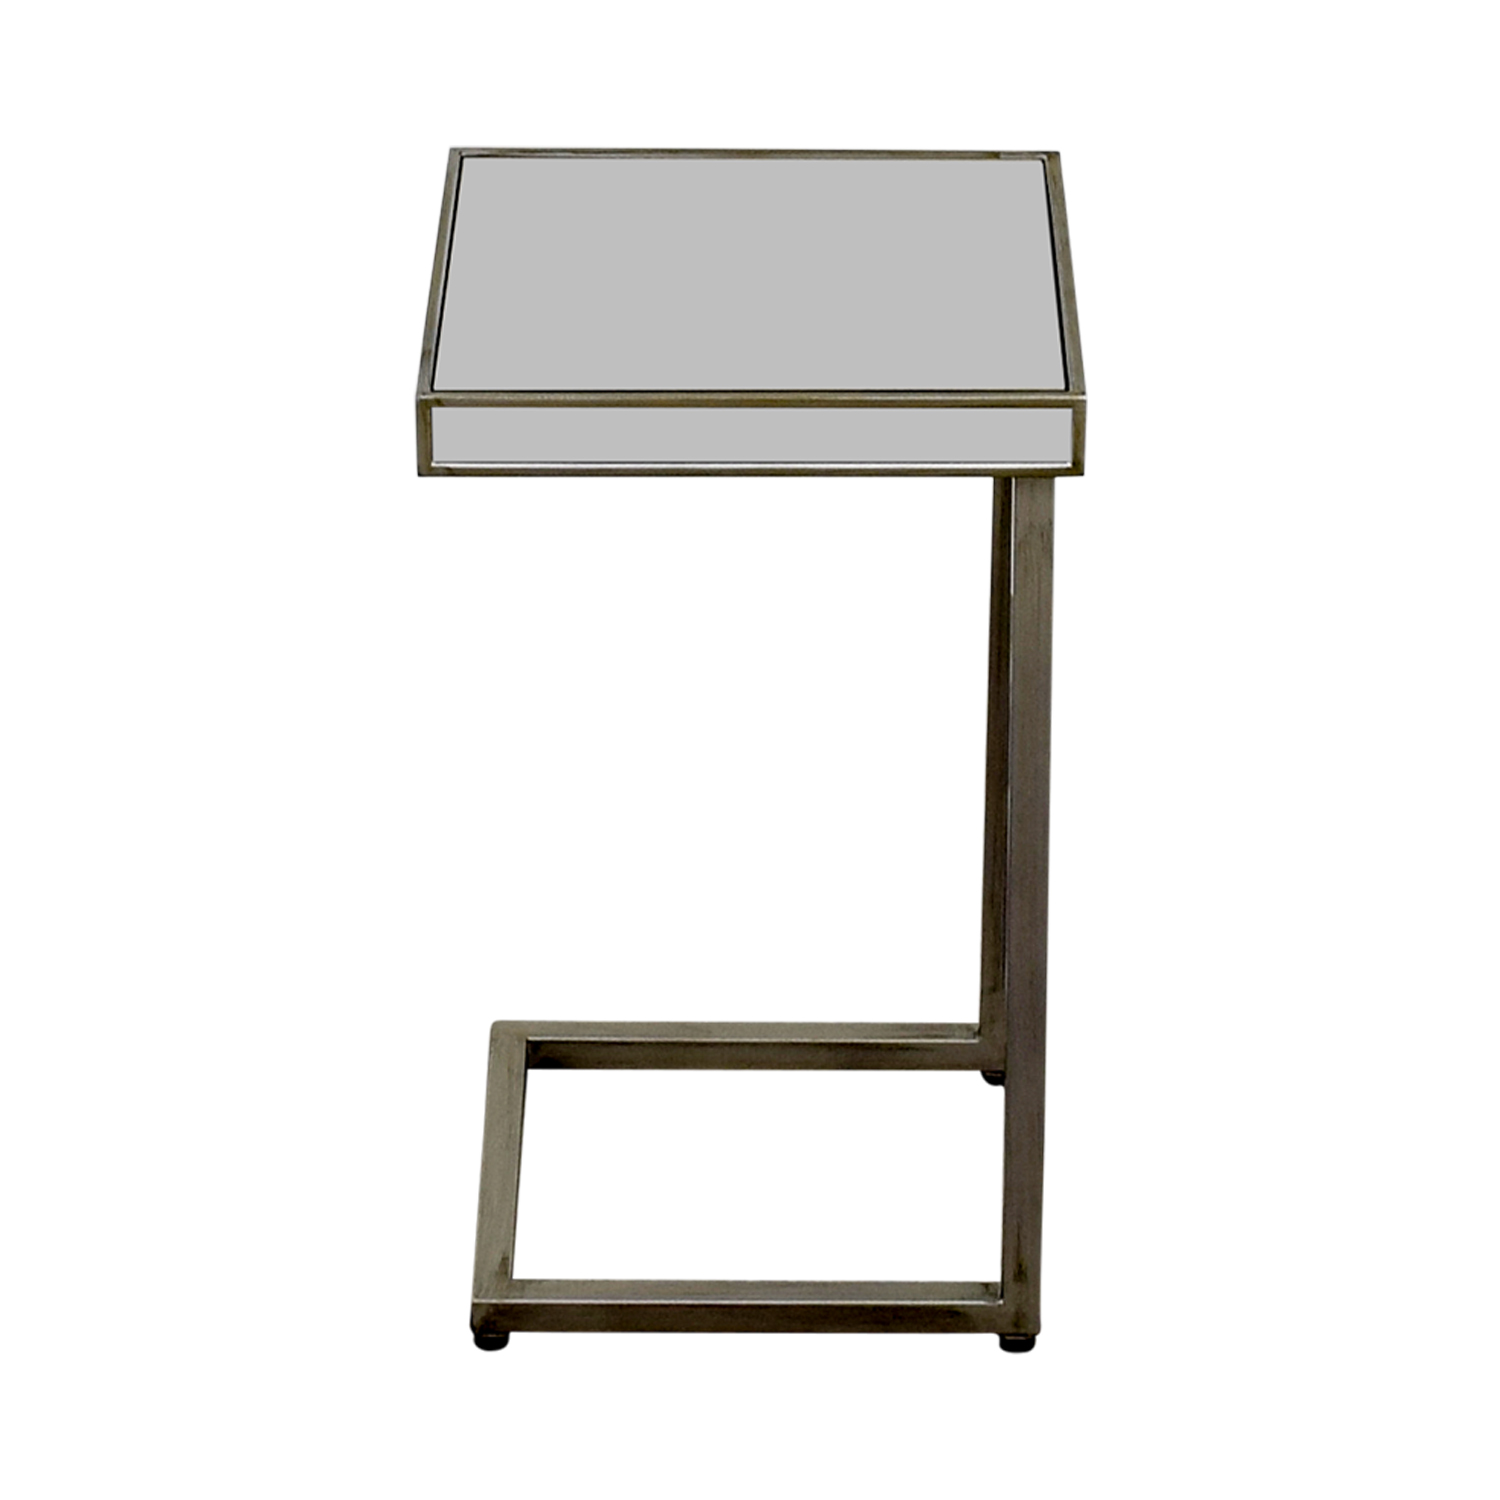 shop Pier 1 Imports Hayworth Silver C-Table in Mirror Pier 1 Imports